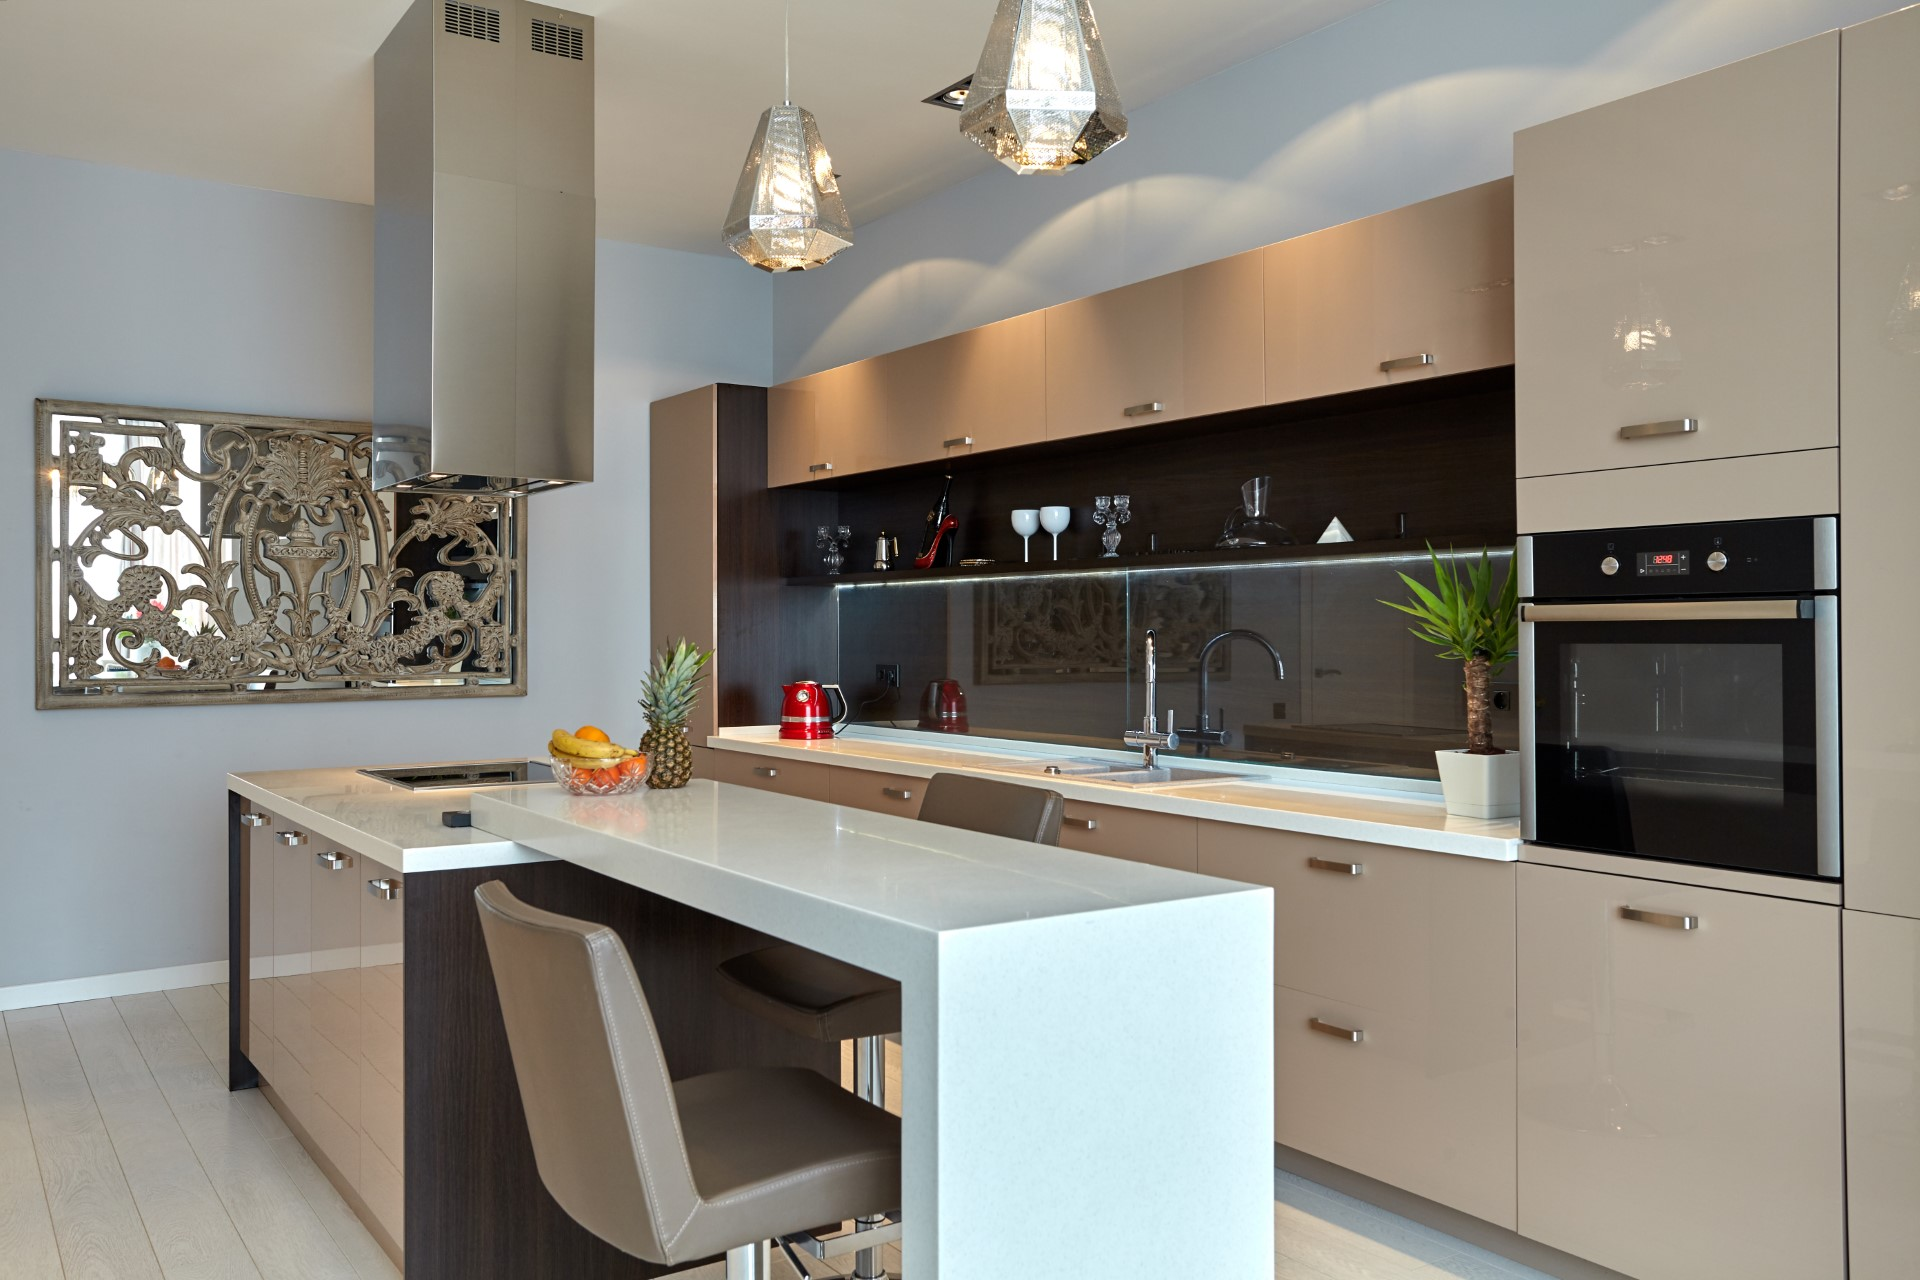 This eccentric modern kitchen has a touch of Indonesia design while keeping a minimalist structure about it. Great for someone who likes to keep it simple.